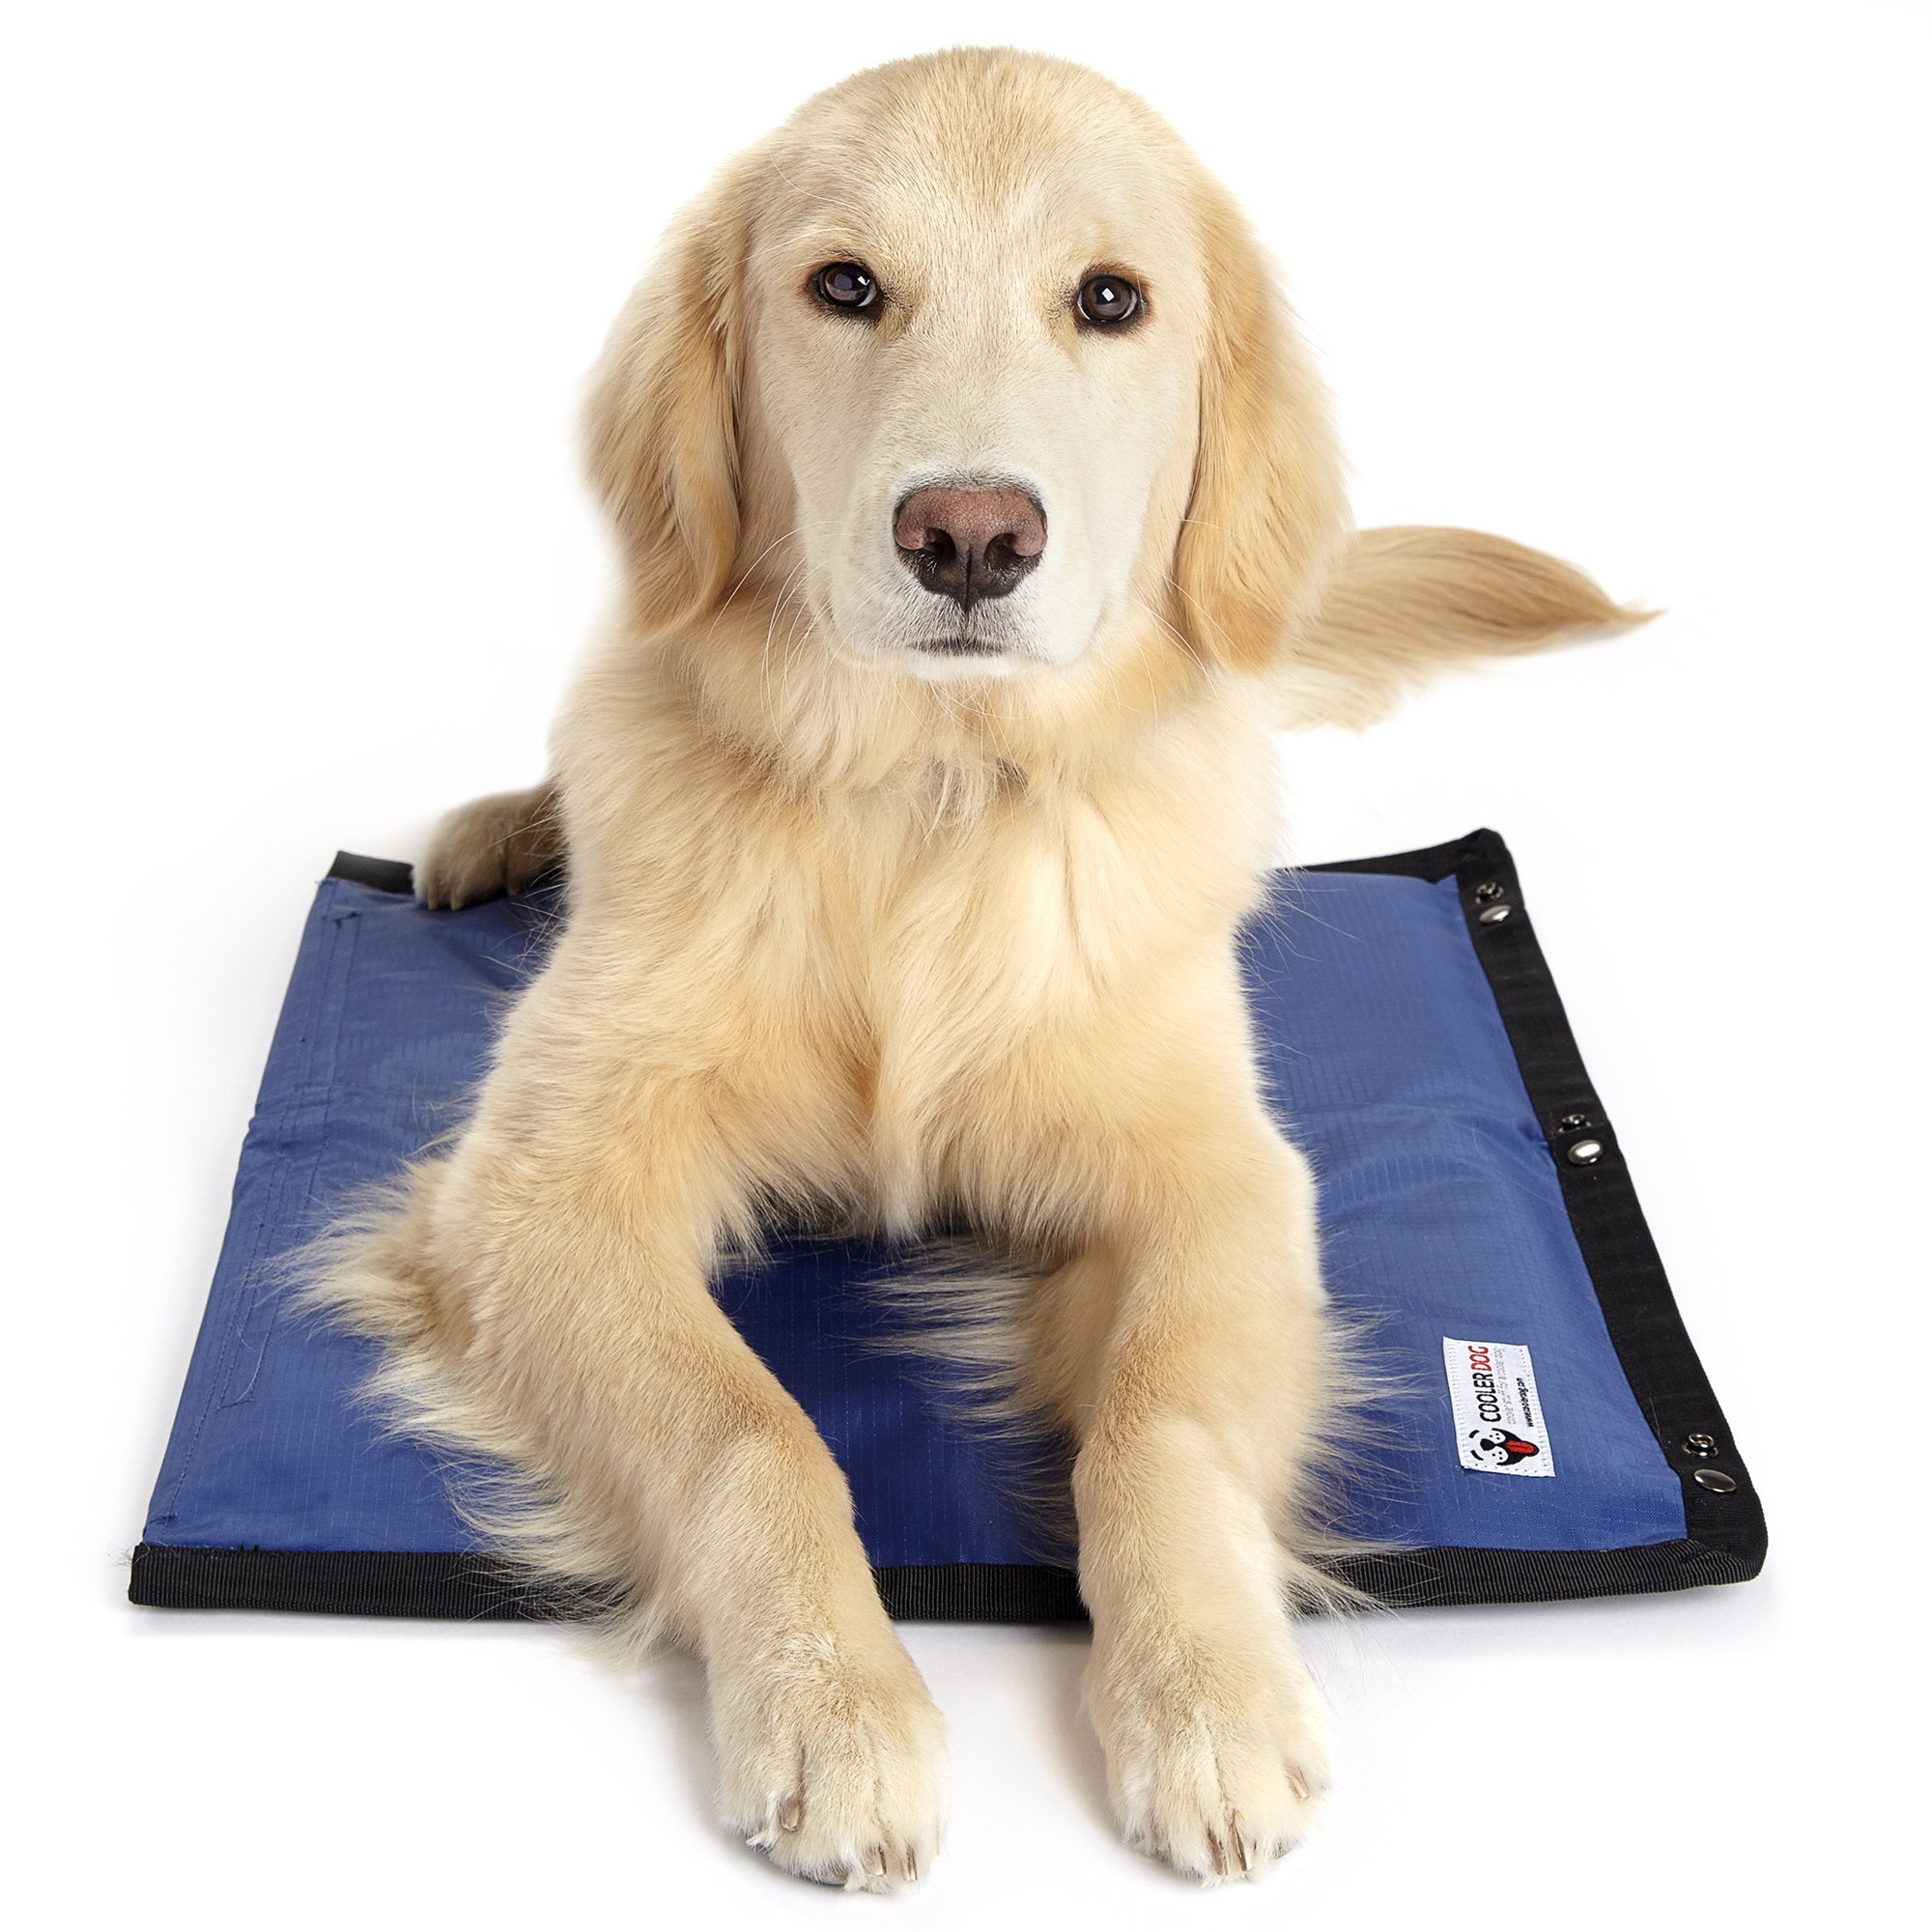 Cooler Dog Turbo Cooling Mat, Small Sized Dogs